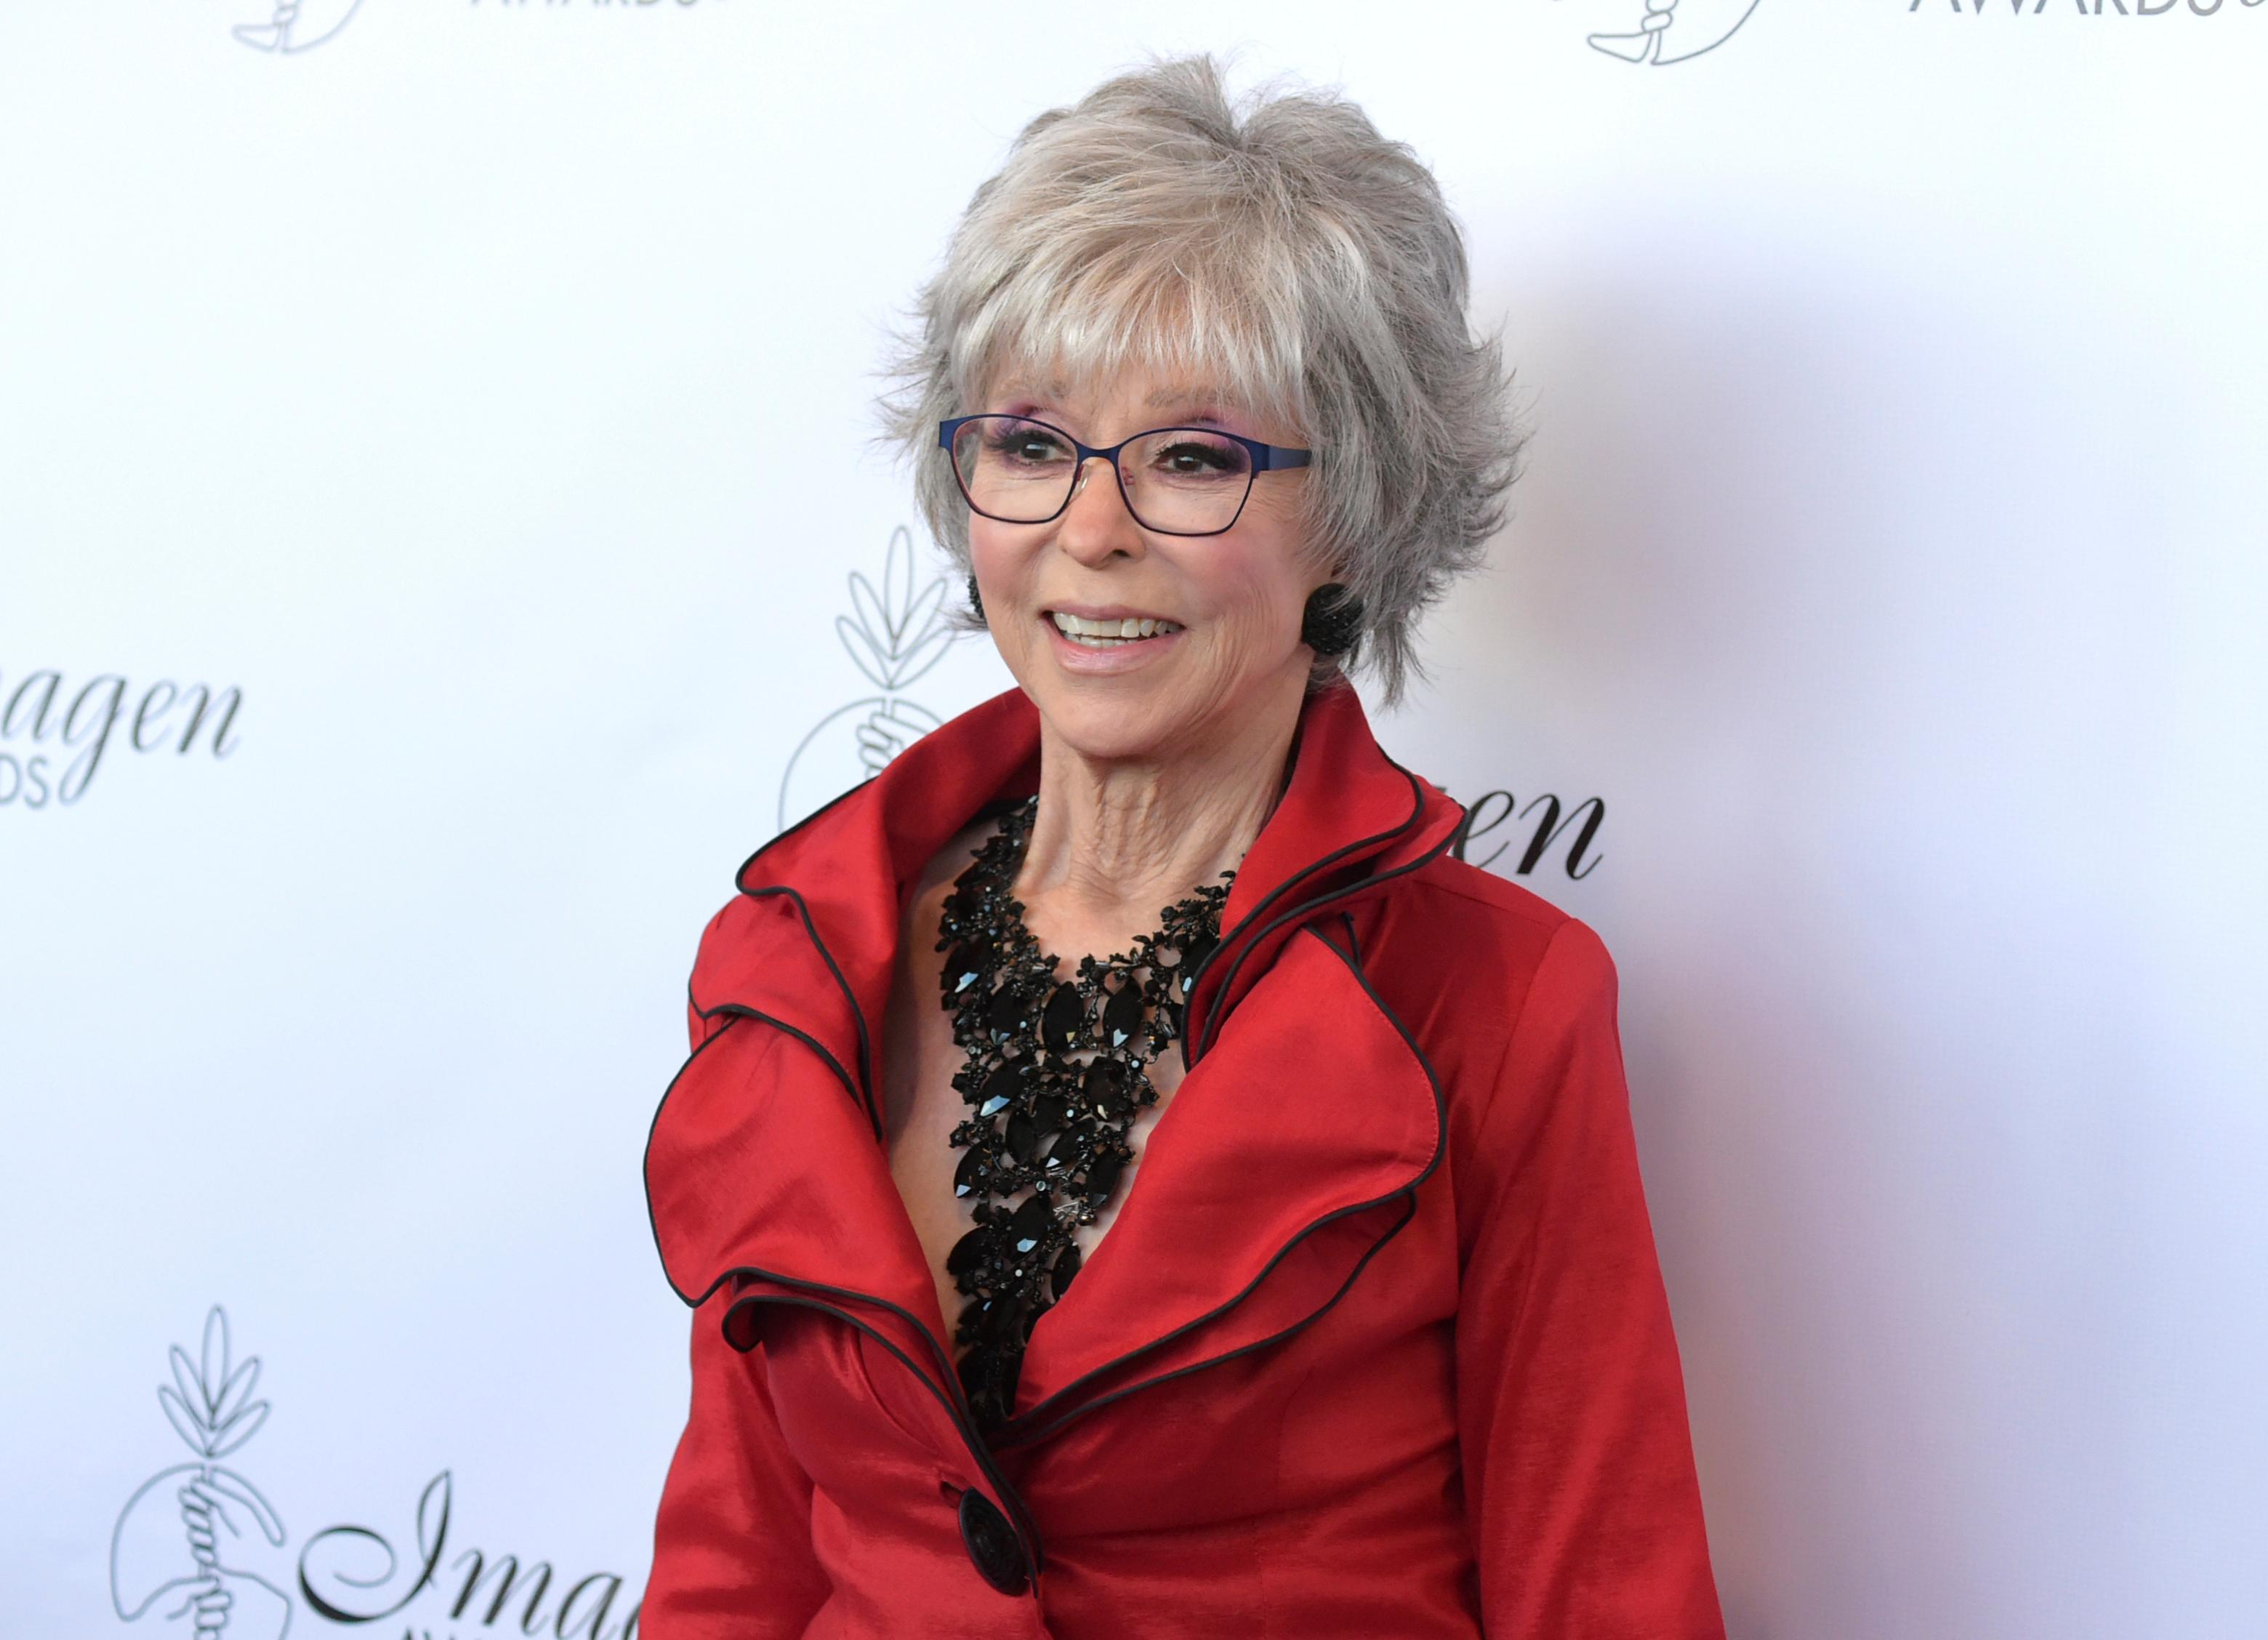 "FILE - In this Aug. 25, 2018, file photo, Rita Moreno arrives at the 33rd annual Imagen Awards in Los Angeles. PBS announced Monday, July 29, 2019, it will air a documentary about Moreno, ""Rita Moreno: The Girl Who Decided to Go For It,"" charting her decades-long career. The project is slated to air in 2020. (Photo by Richard Shotwell/Invision/AP, File)"